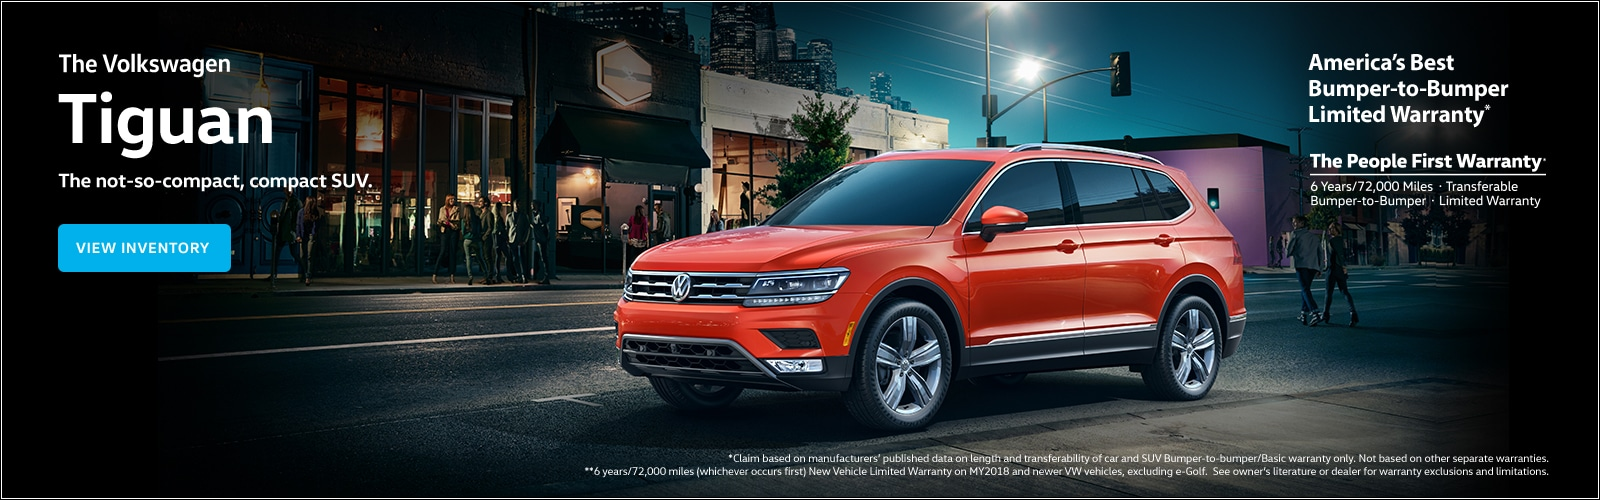 tests volkswagen like test diesel to story tribune vw cheating ct thwart dealers business change epa in chicago